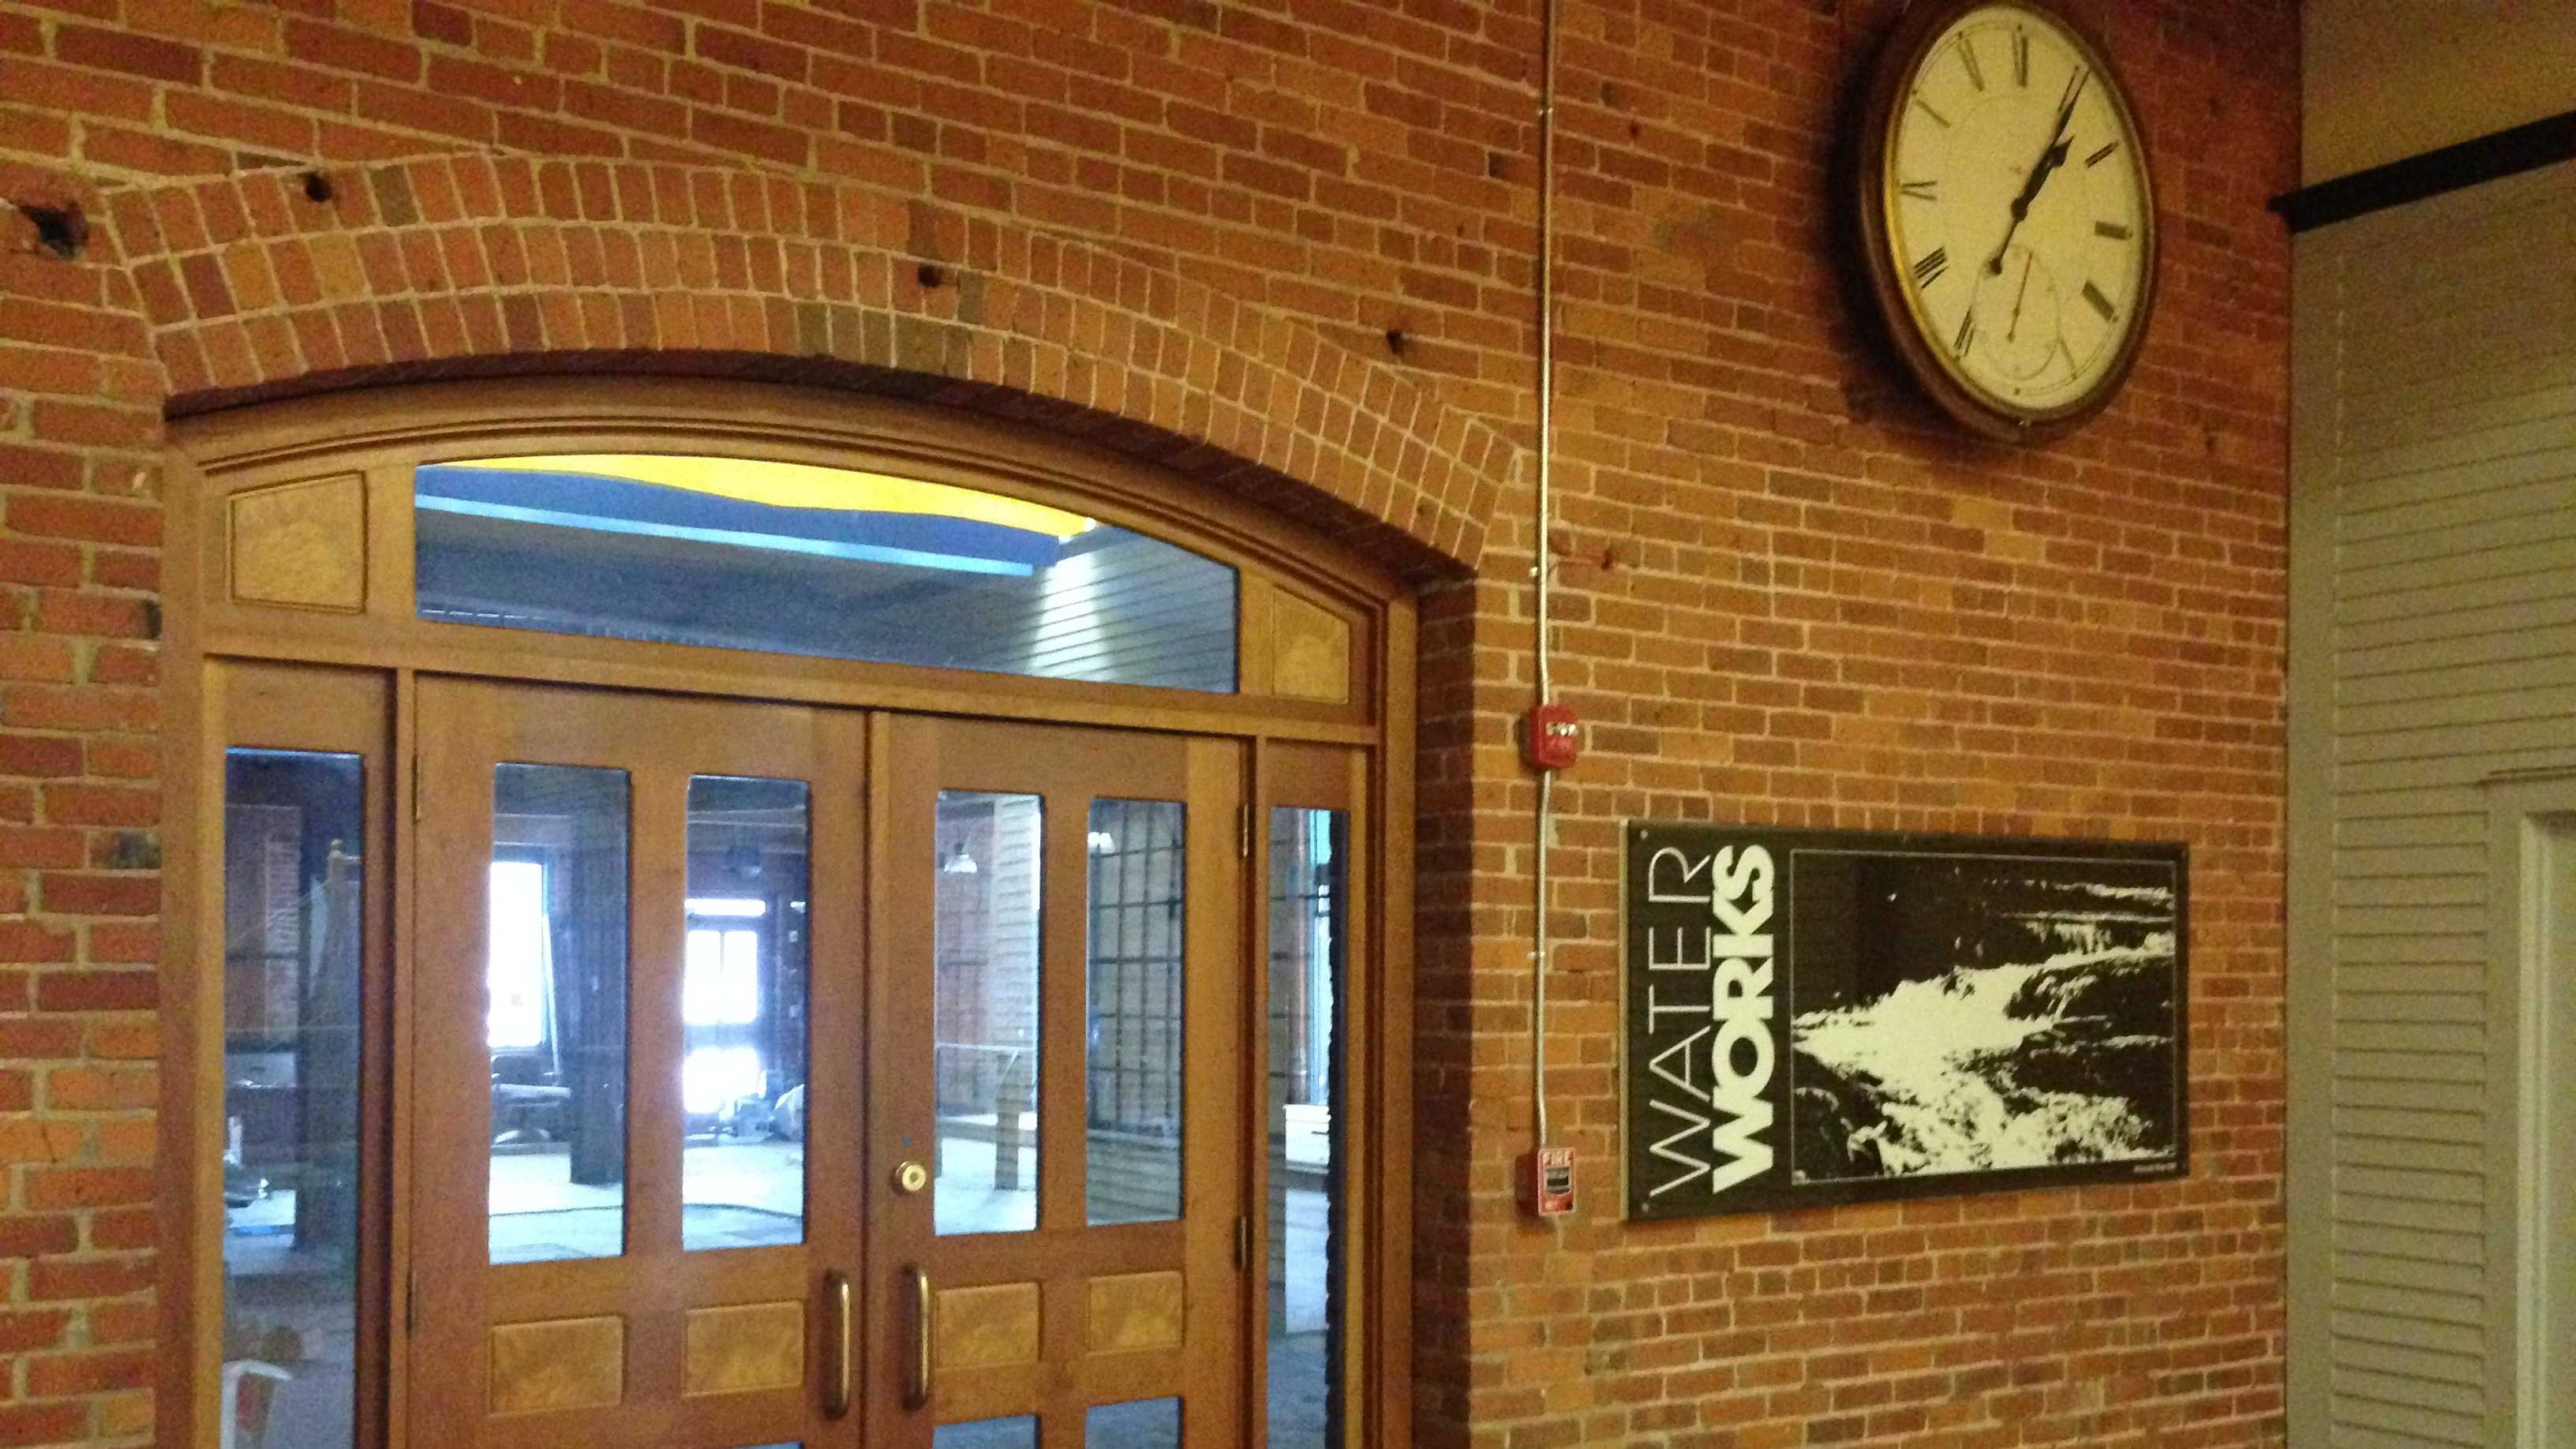 The interior Champlain Mill entrance to the restaurant is largely unchanged since its opening in 1981.